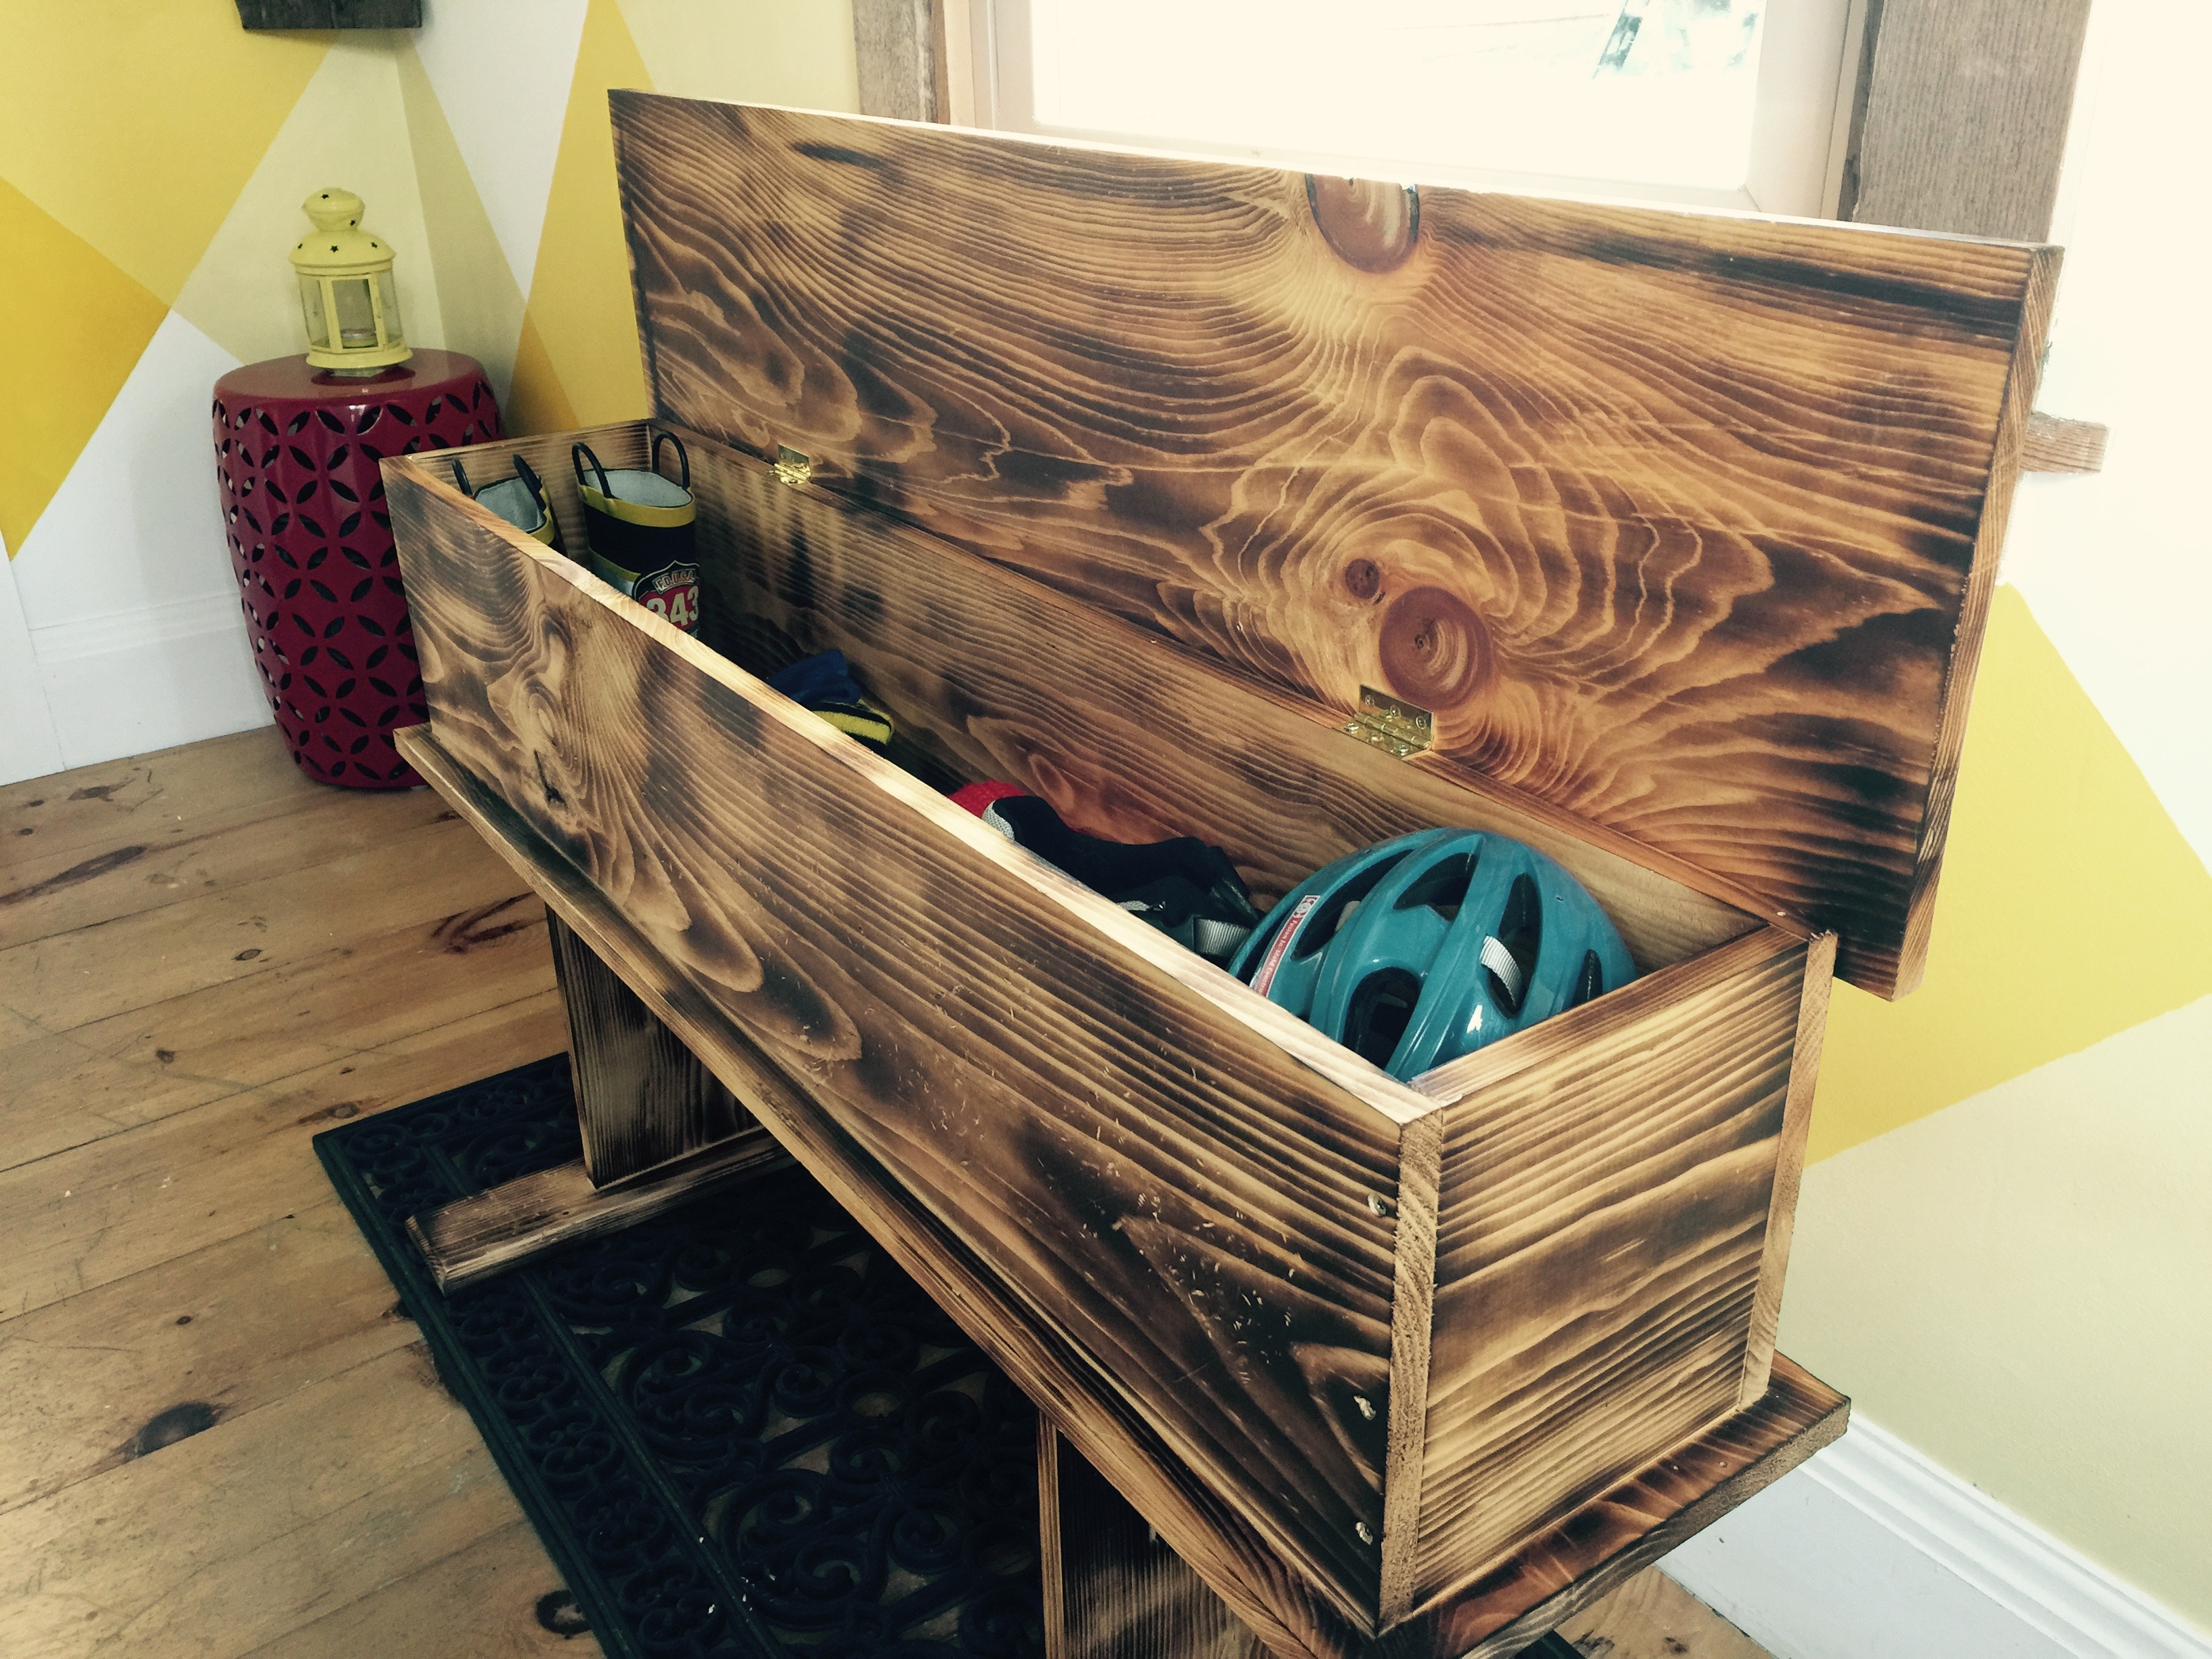 Ordinaire How To Make A Burnt Wood Storage Bench